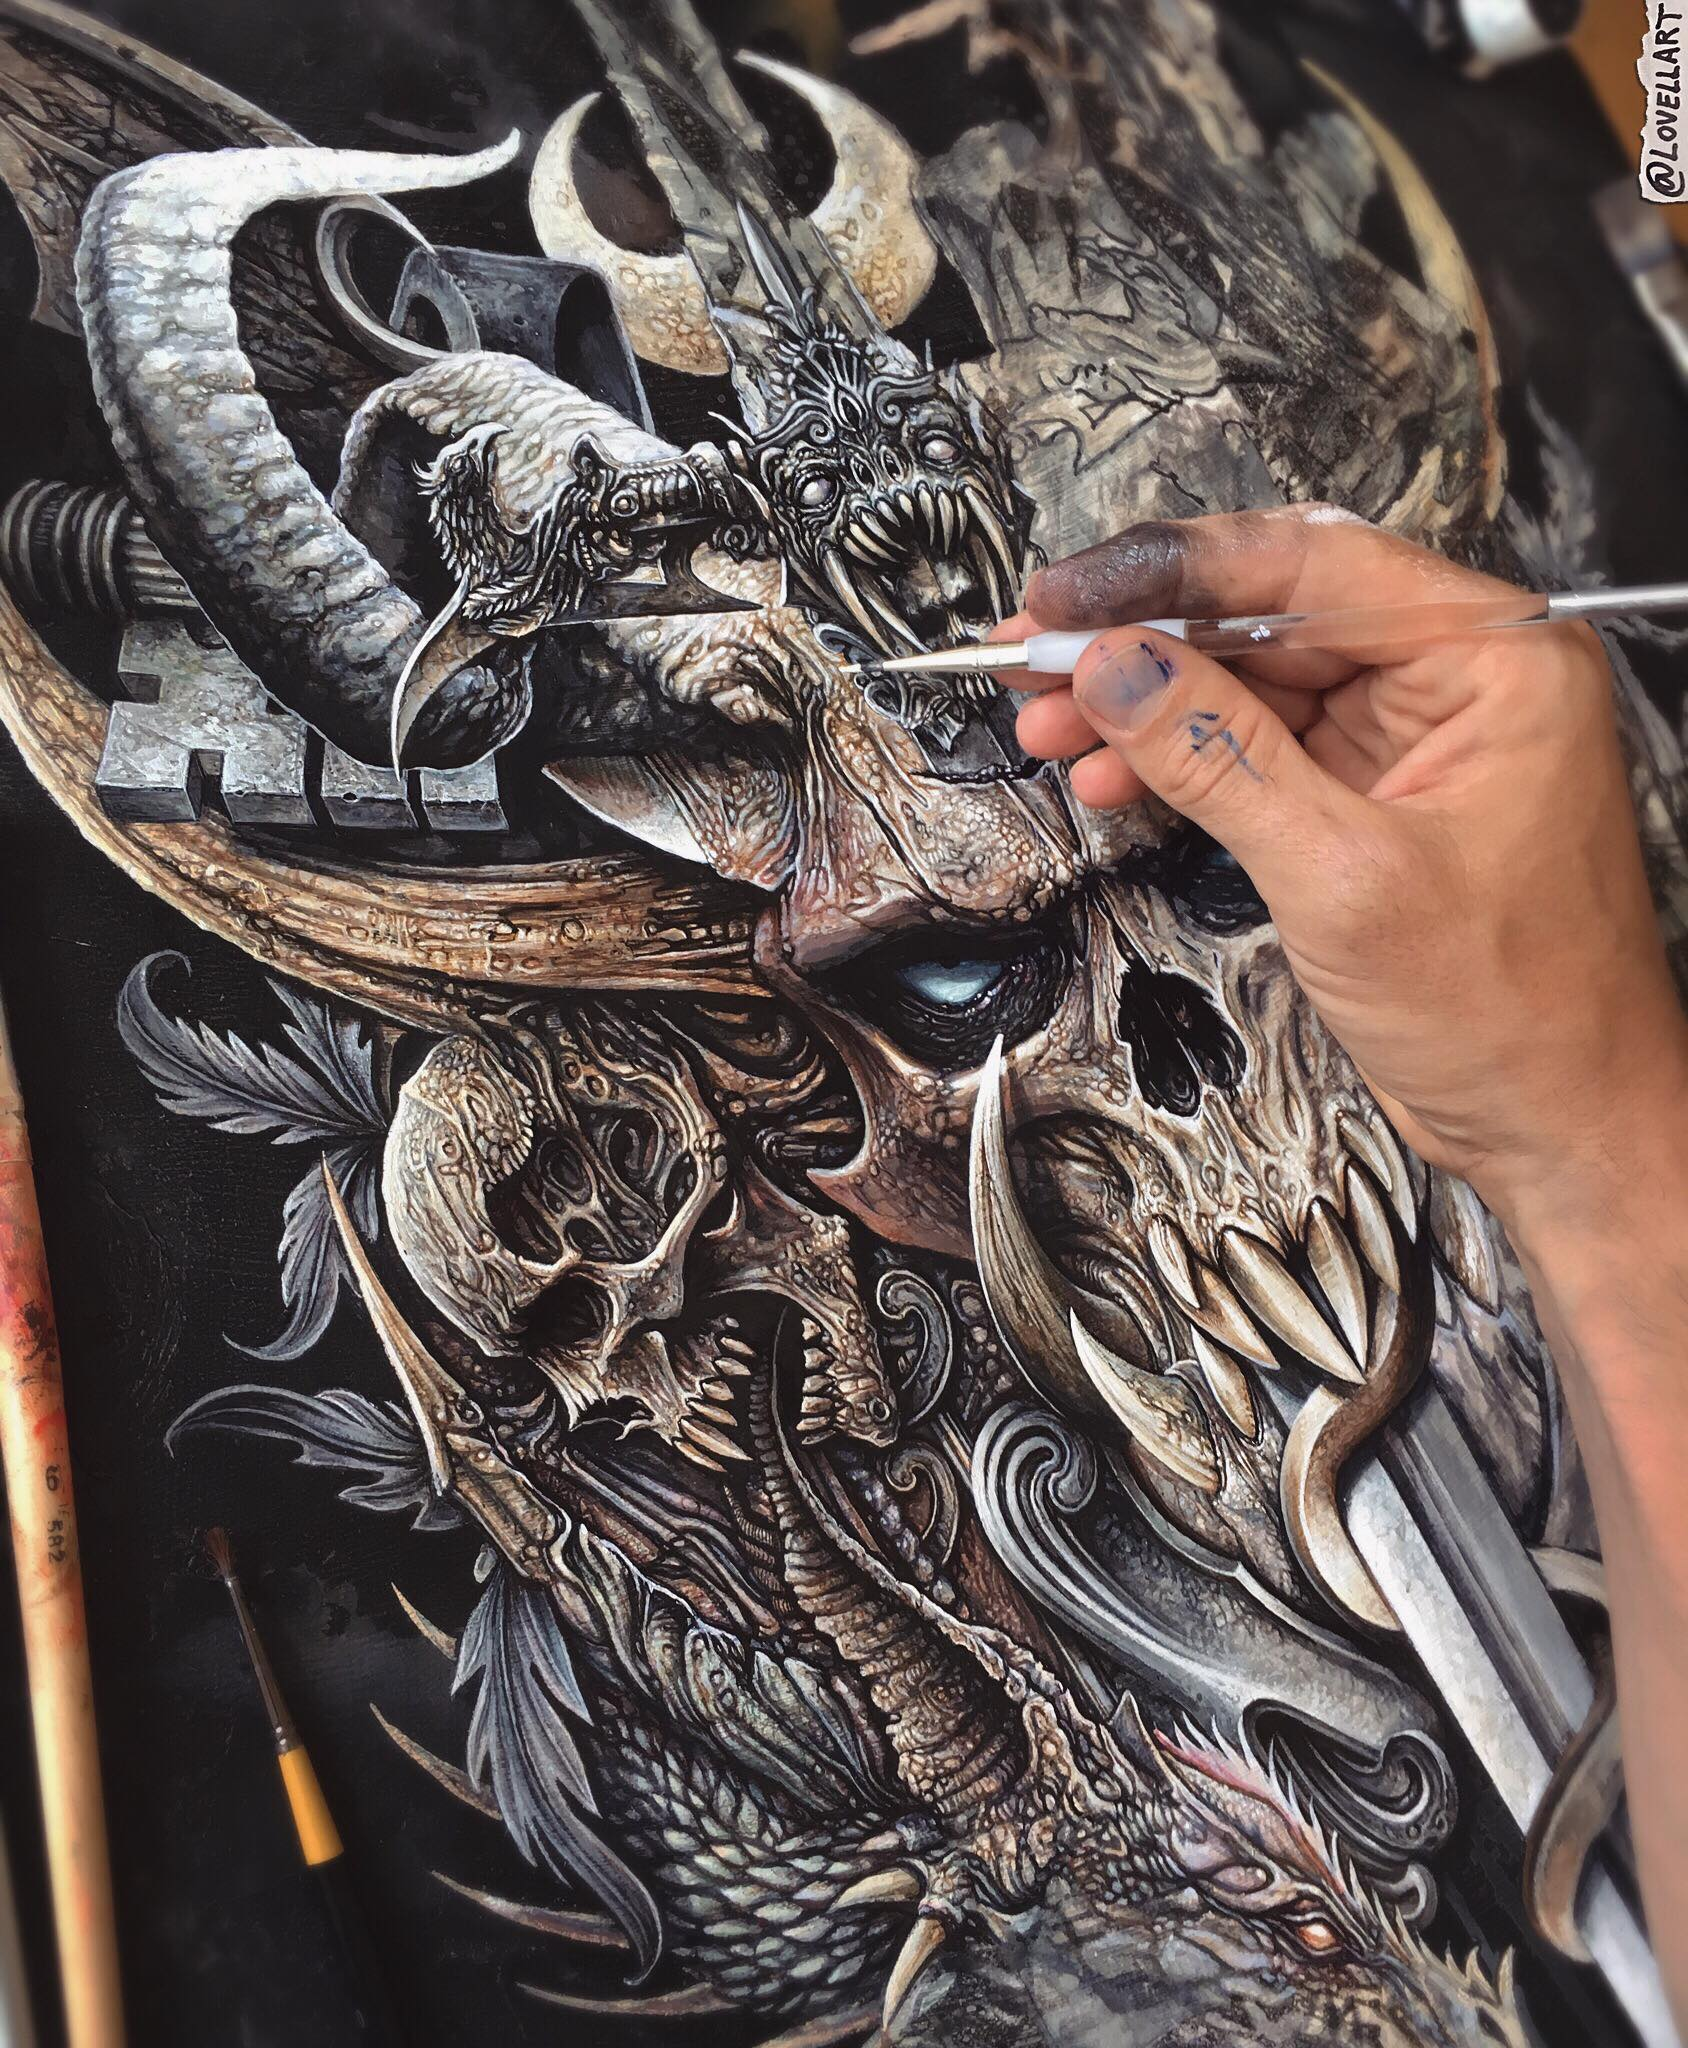 🔥☠️Progress peek!🗡 Thought I'd give you a look at what's currently on the drawing board..  I've been busy working flat out on this beast of a painting, so many details and textures for me to play with! 🤗 Lots of refining still to do on what you see here, but this eve I make my way down to the lower left dragon head!🐲 This commission has been giving me lots of nostalgia and totally the kind of art I wanted to produce when I was a school kid playing Warhammer and listening to metal! Thanks so much  Joe Manganiello  for your patience on this!💪🏼 Stay tuned for a new dragon head any day now and a UK convention announcement! 👀